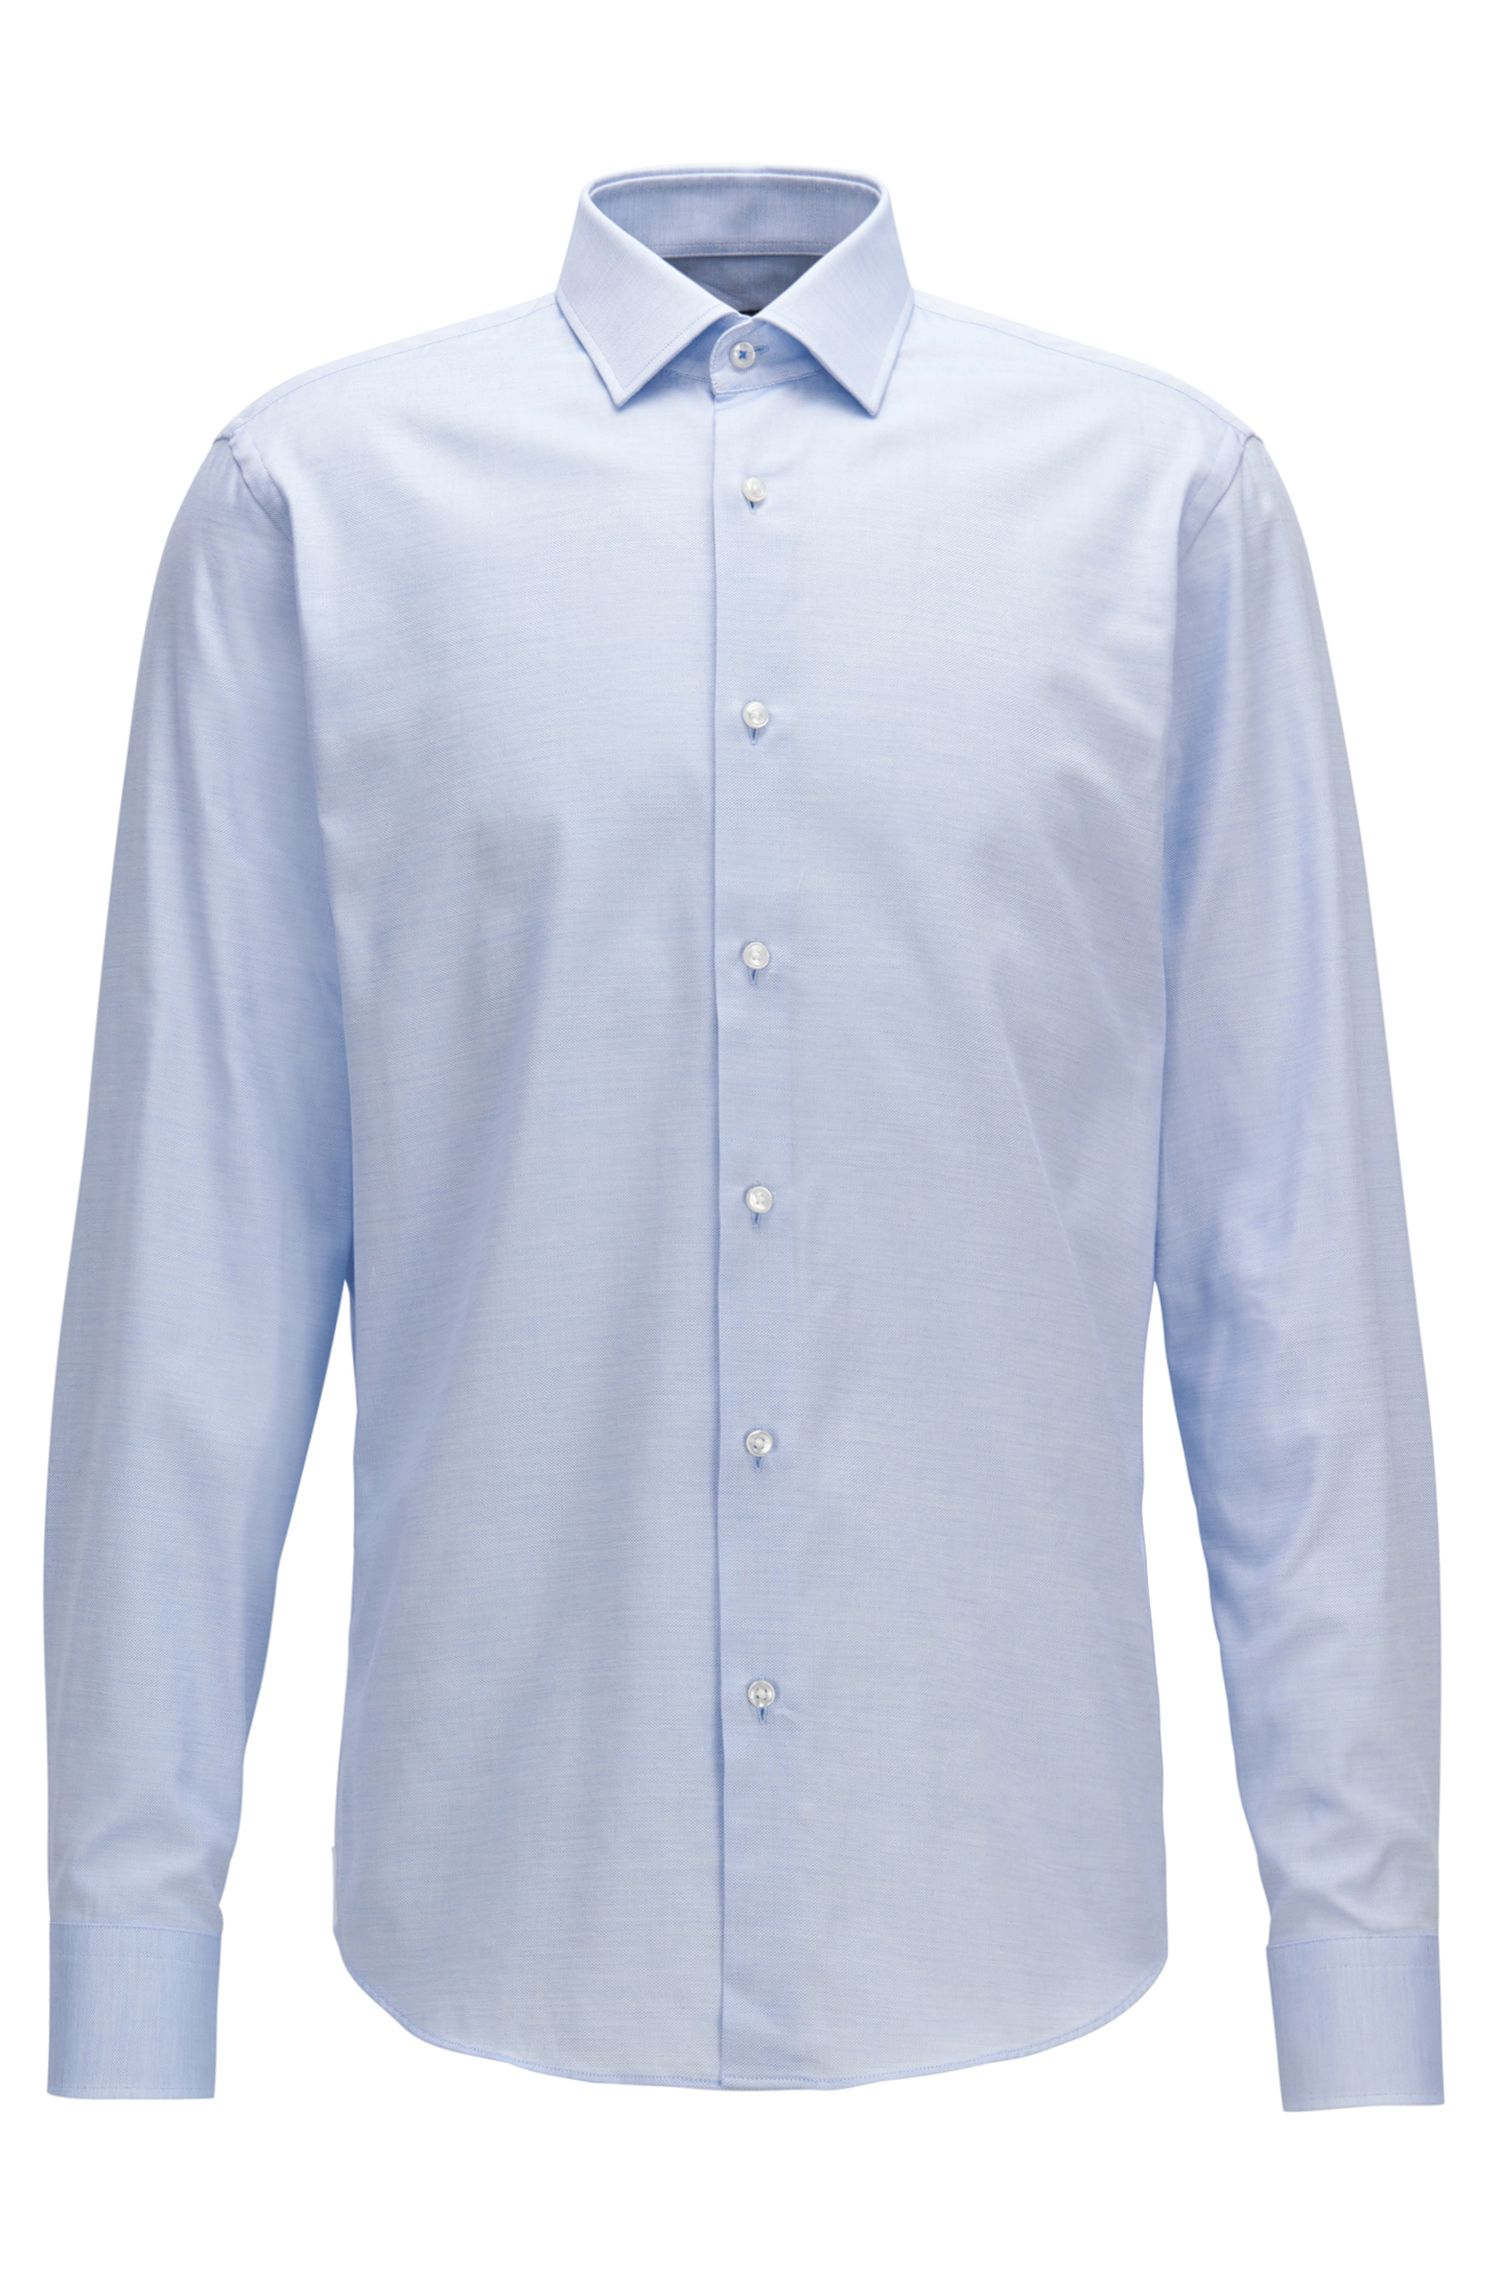 Regular-fit shirt in micro-pattern cotton